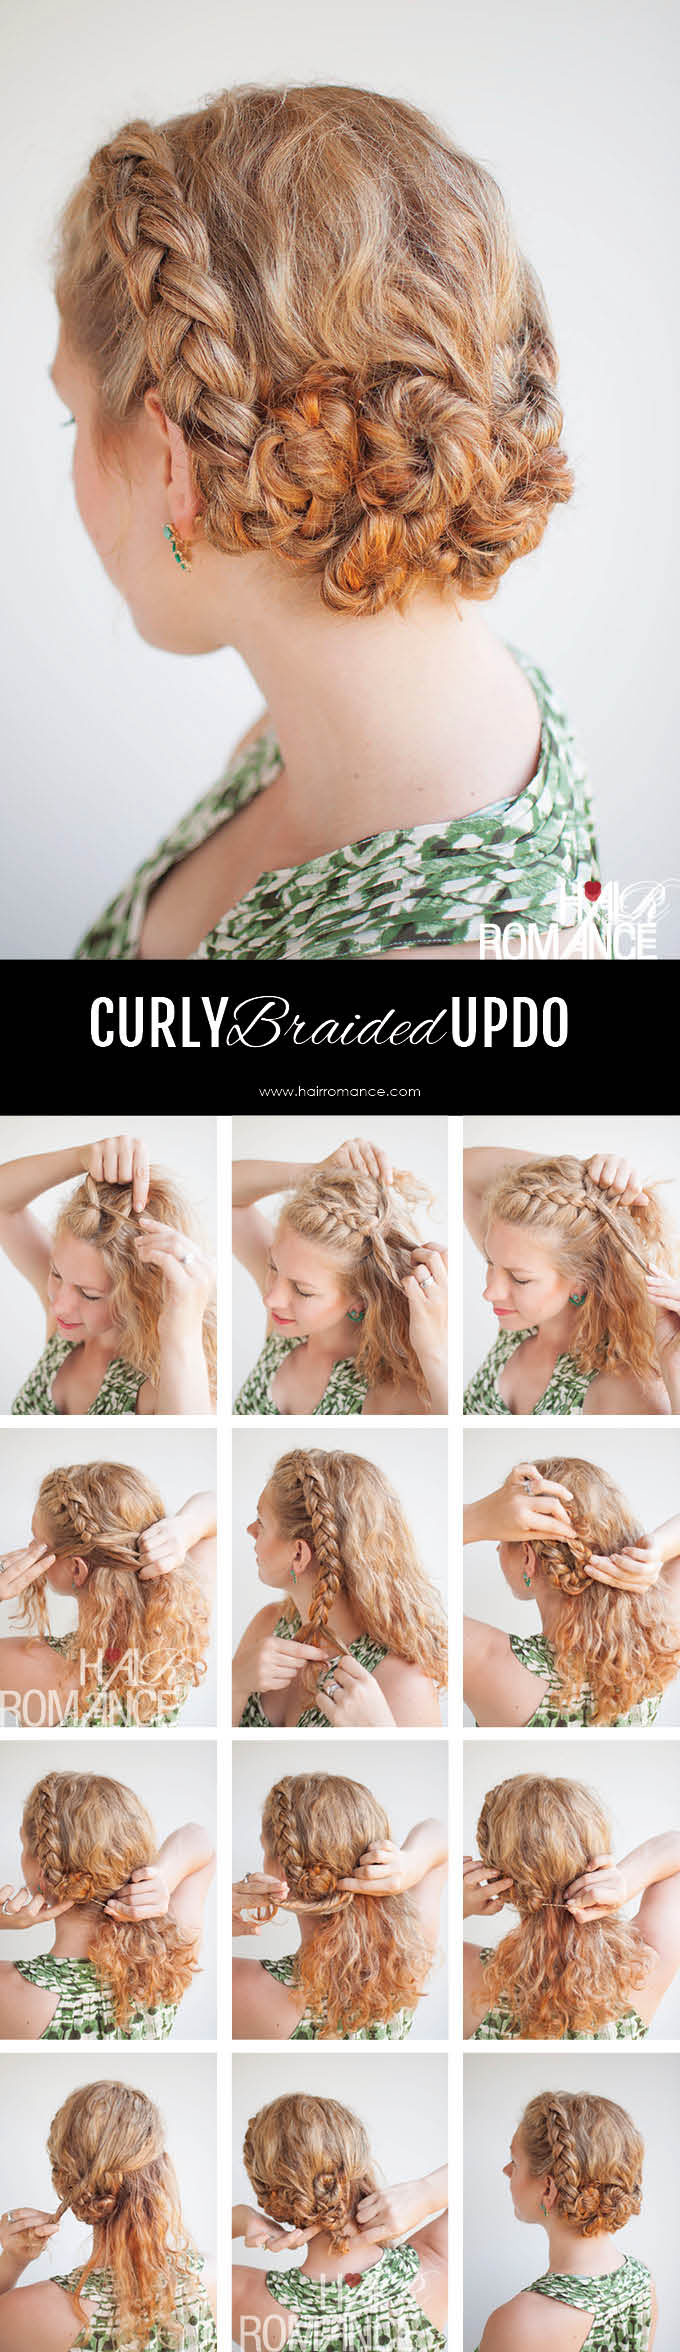 Twist and Pin braided updo for curly hair - Hair Romance